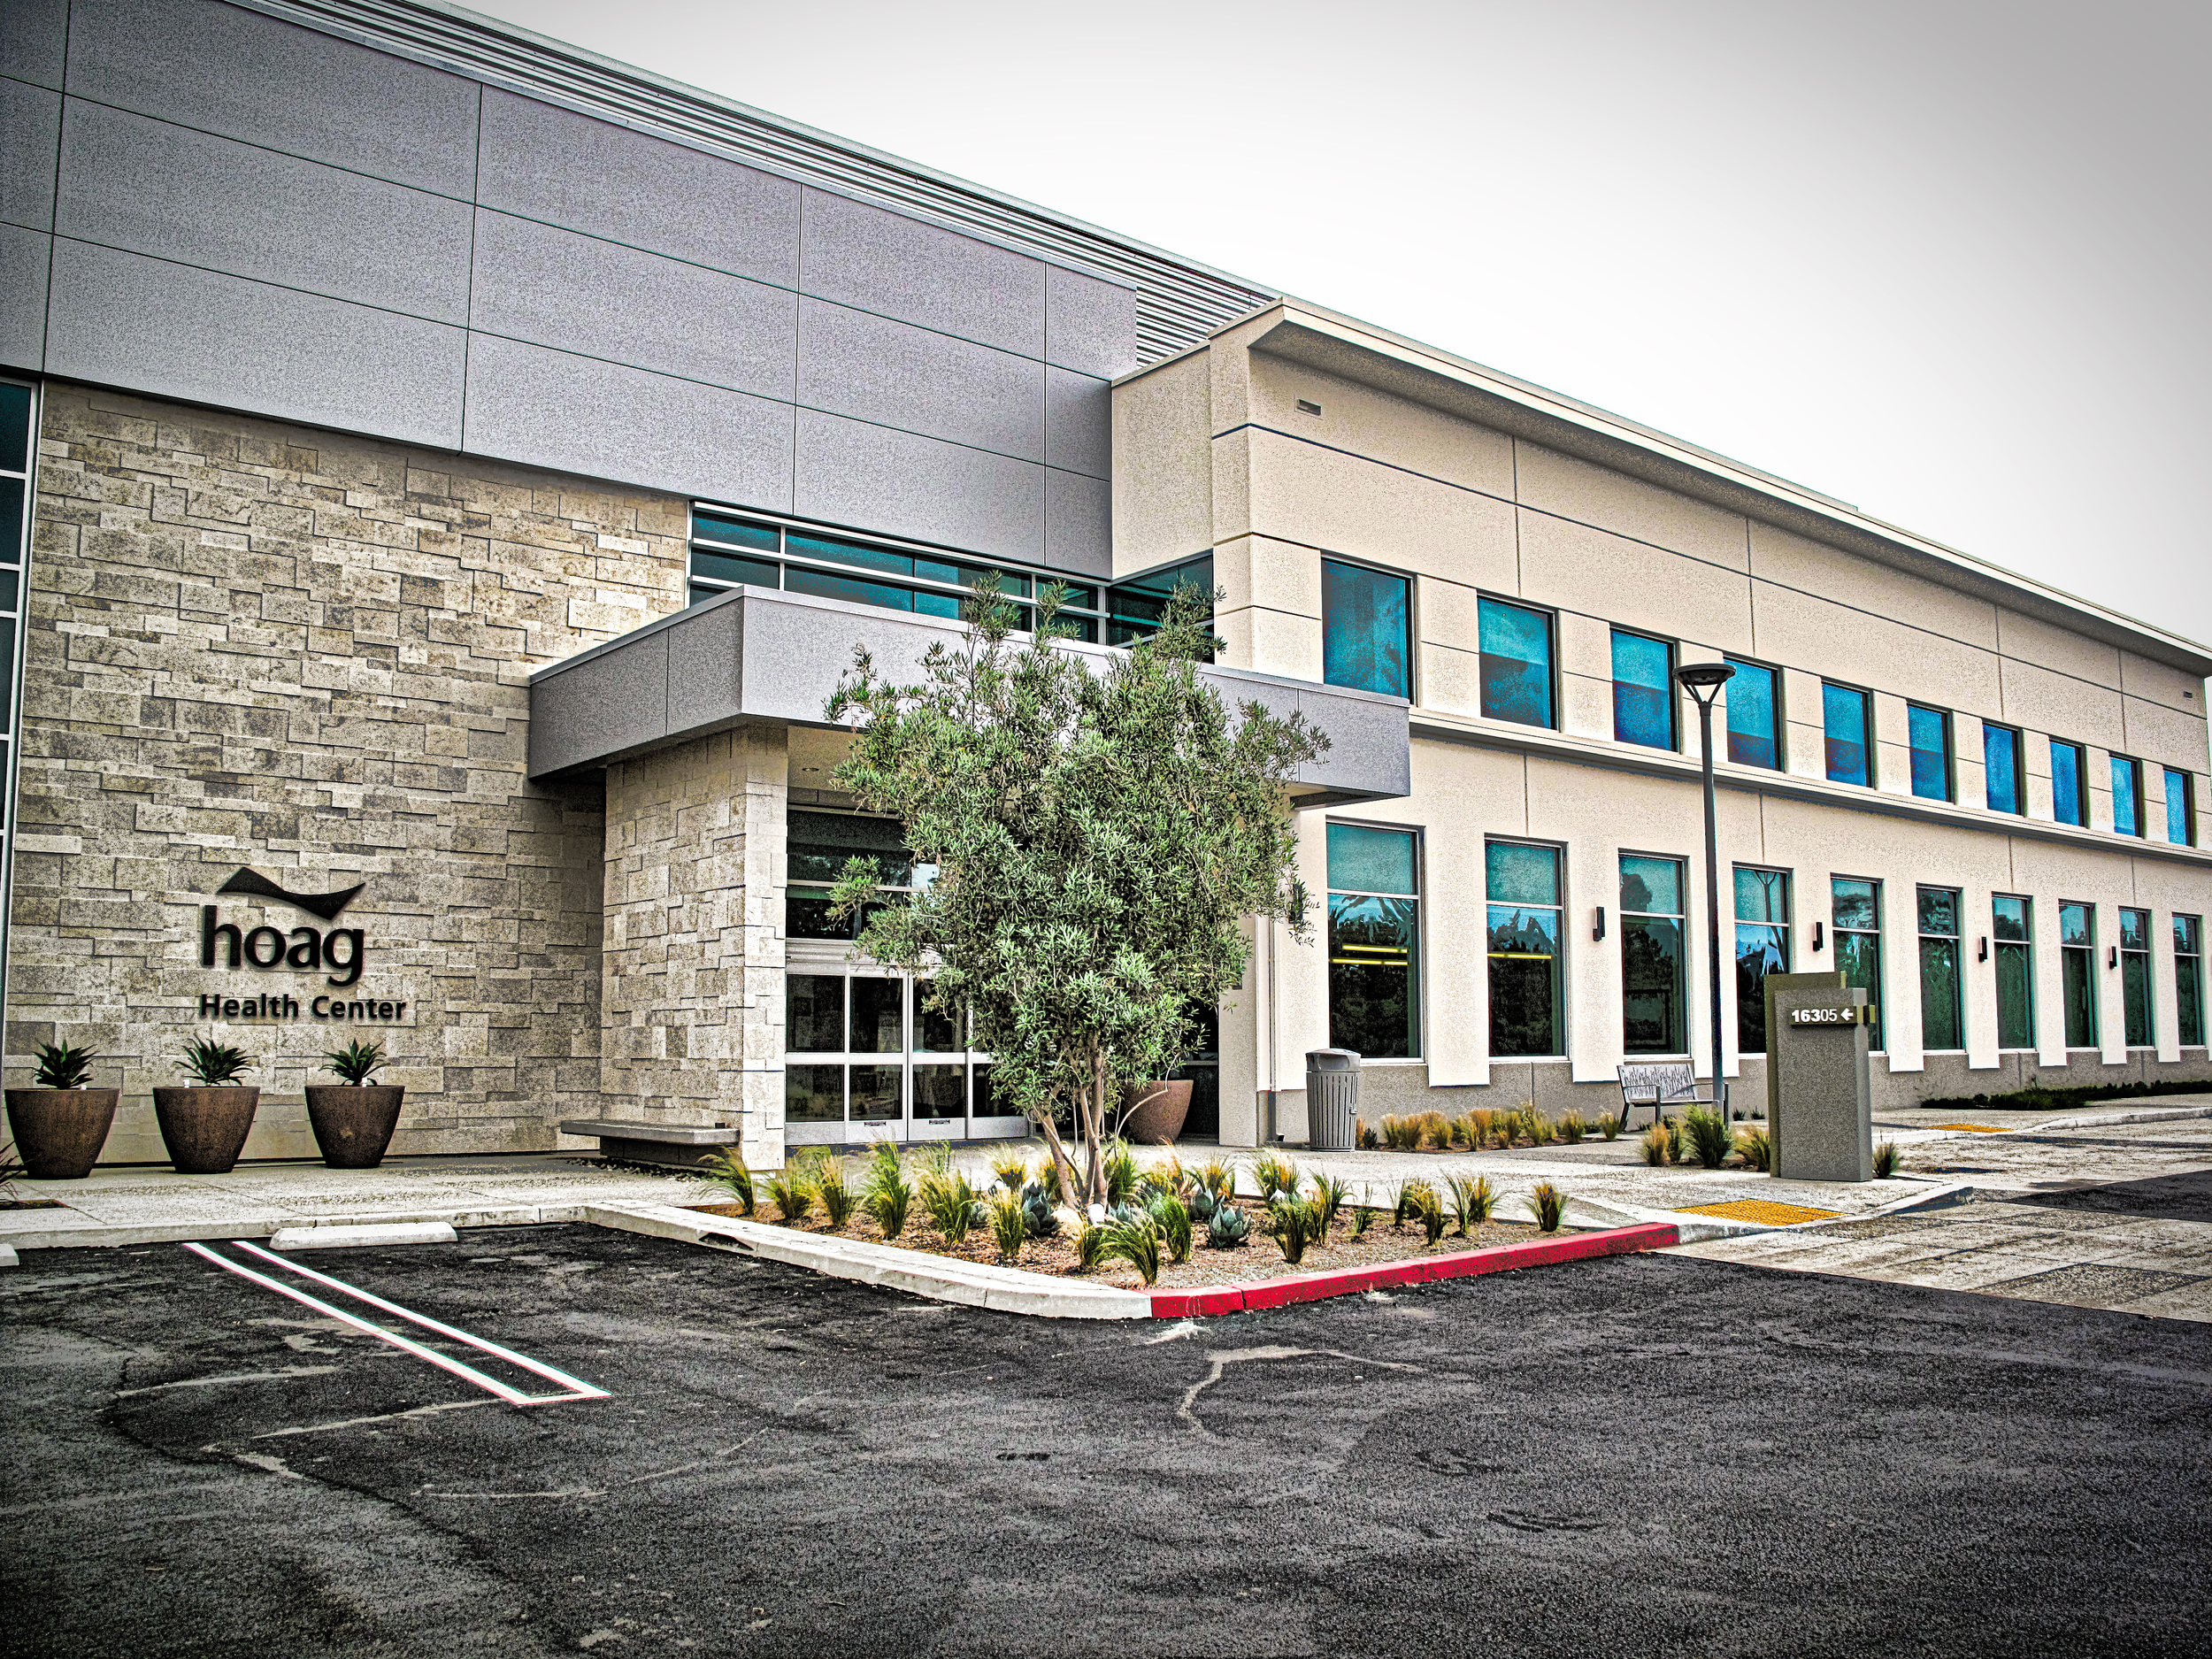 16305 Sand Canyon Ave,   Suite 255   Irvine, CA 92618    Phone: (949) 276-2446    Fax: (949) 276-2449